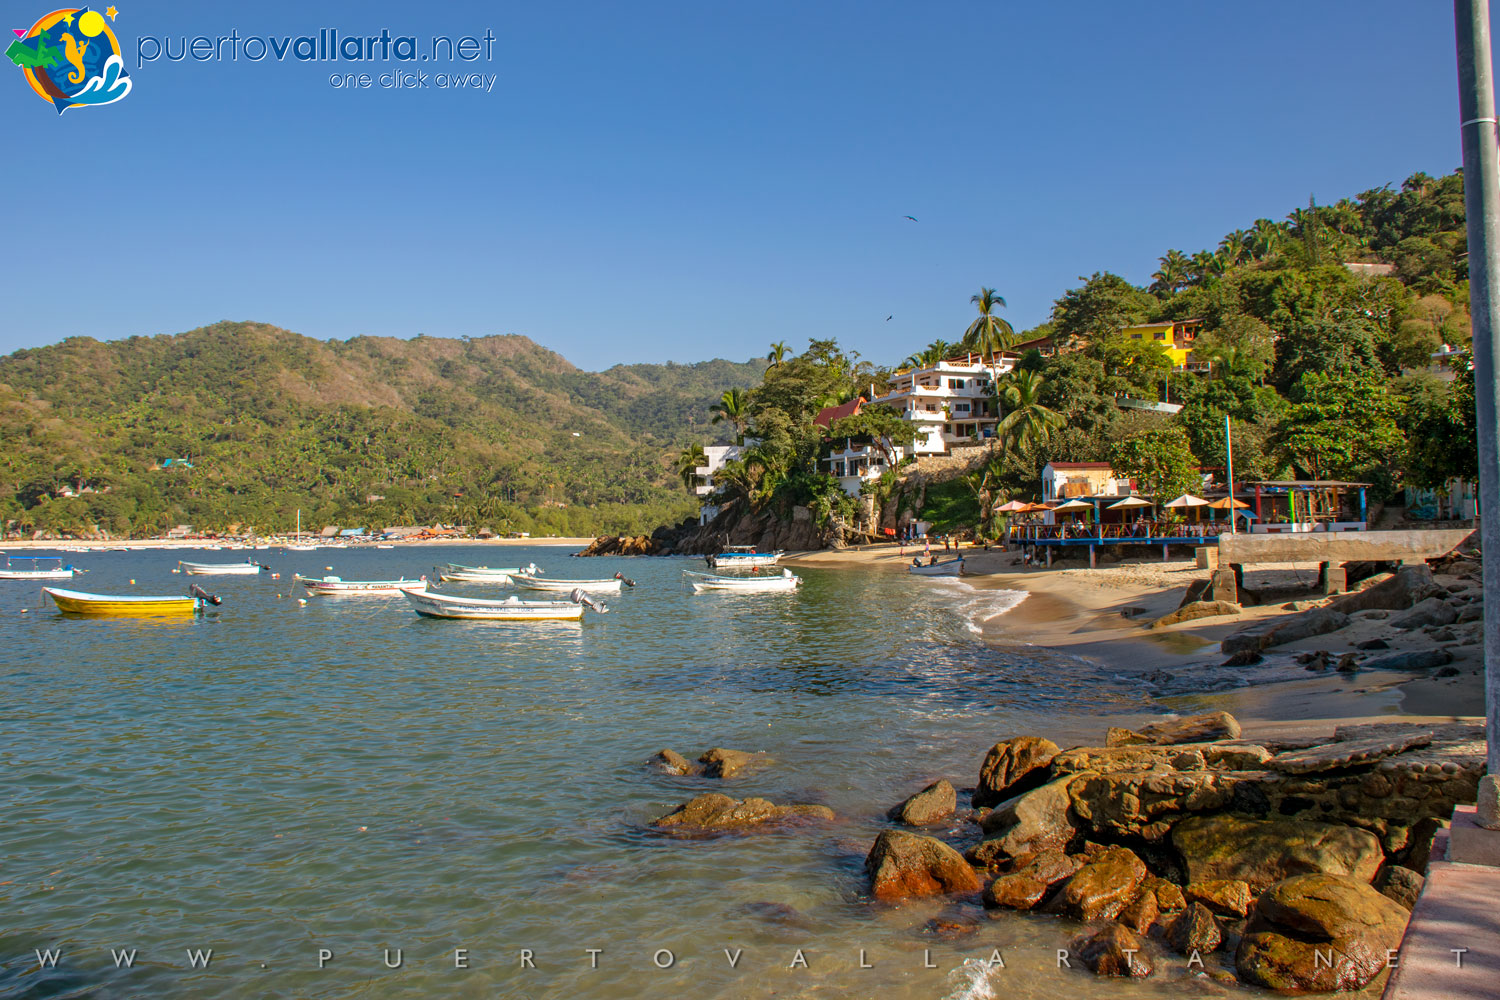 Yelapa town as seen from the west pier (Cabo Corrientes, Jalisco, Mexico)